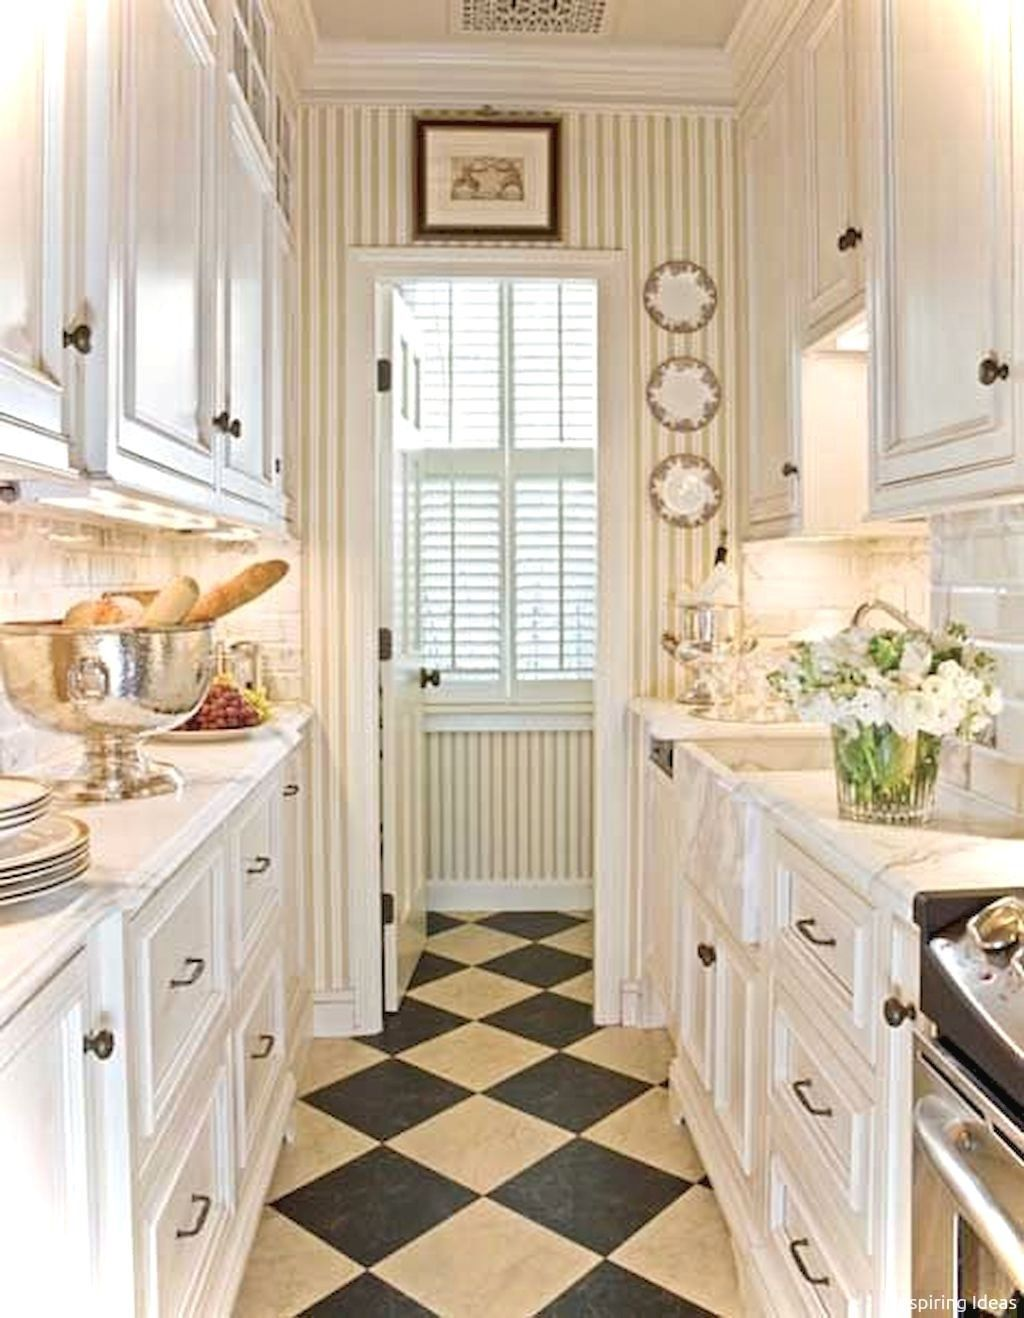 54 Little Kitchen Ideas French Country Style Galley Kitchen